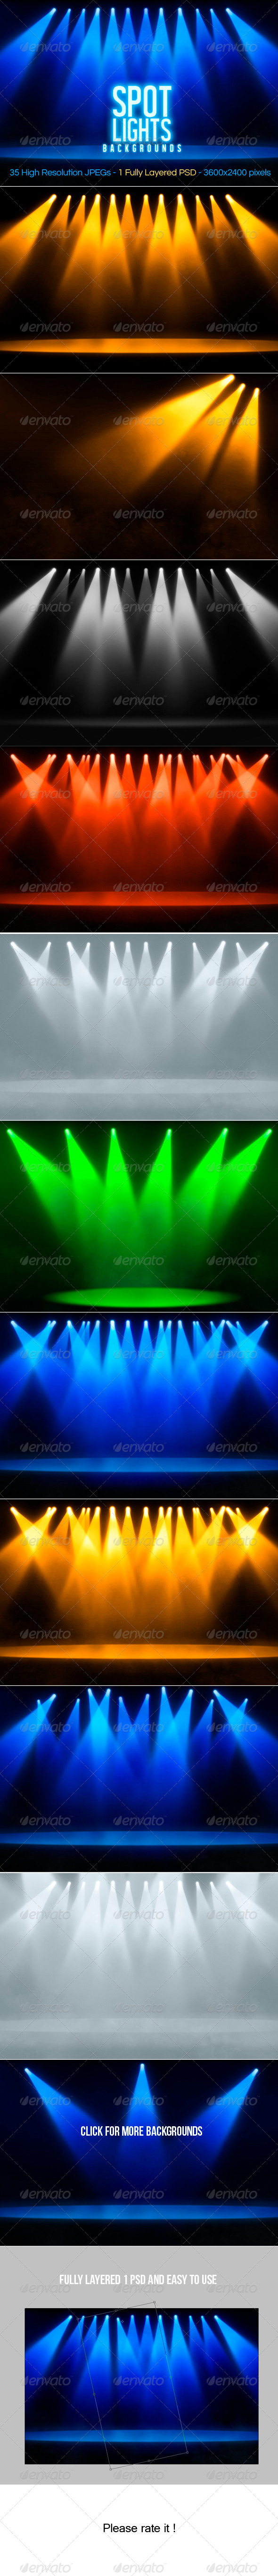 Spotlights Backgrounds - Miscellaneous Backgrounds